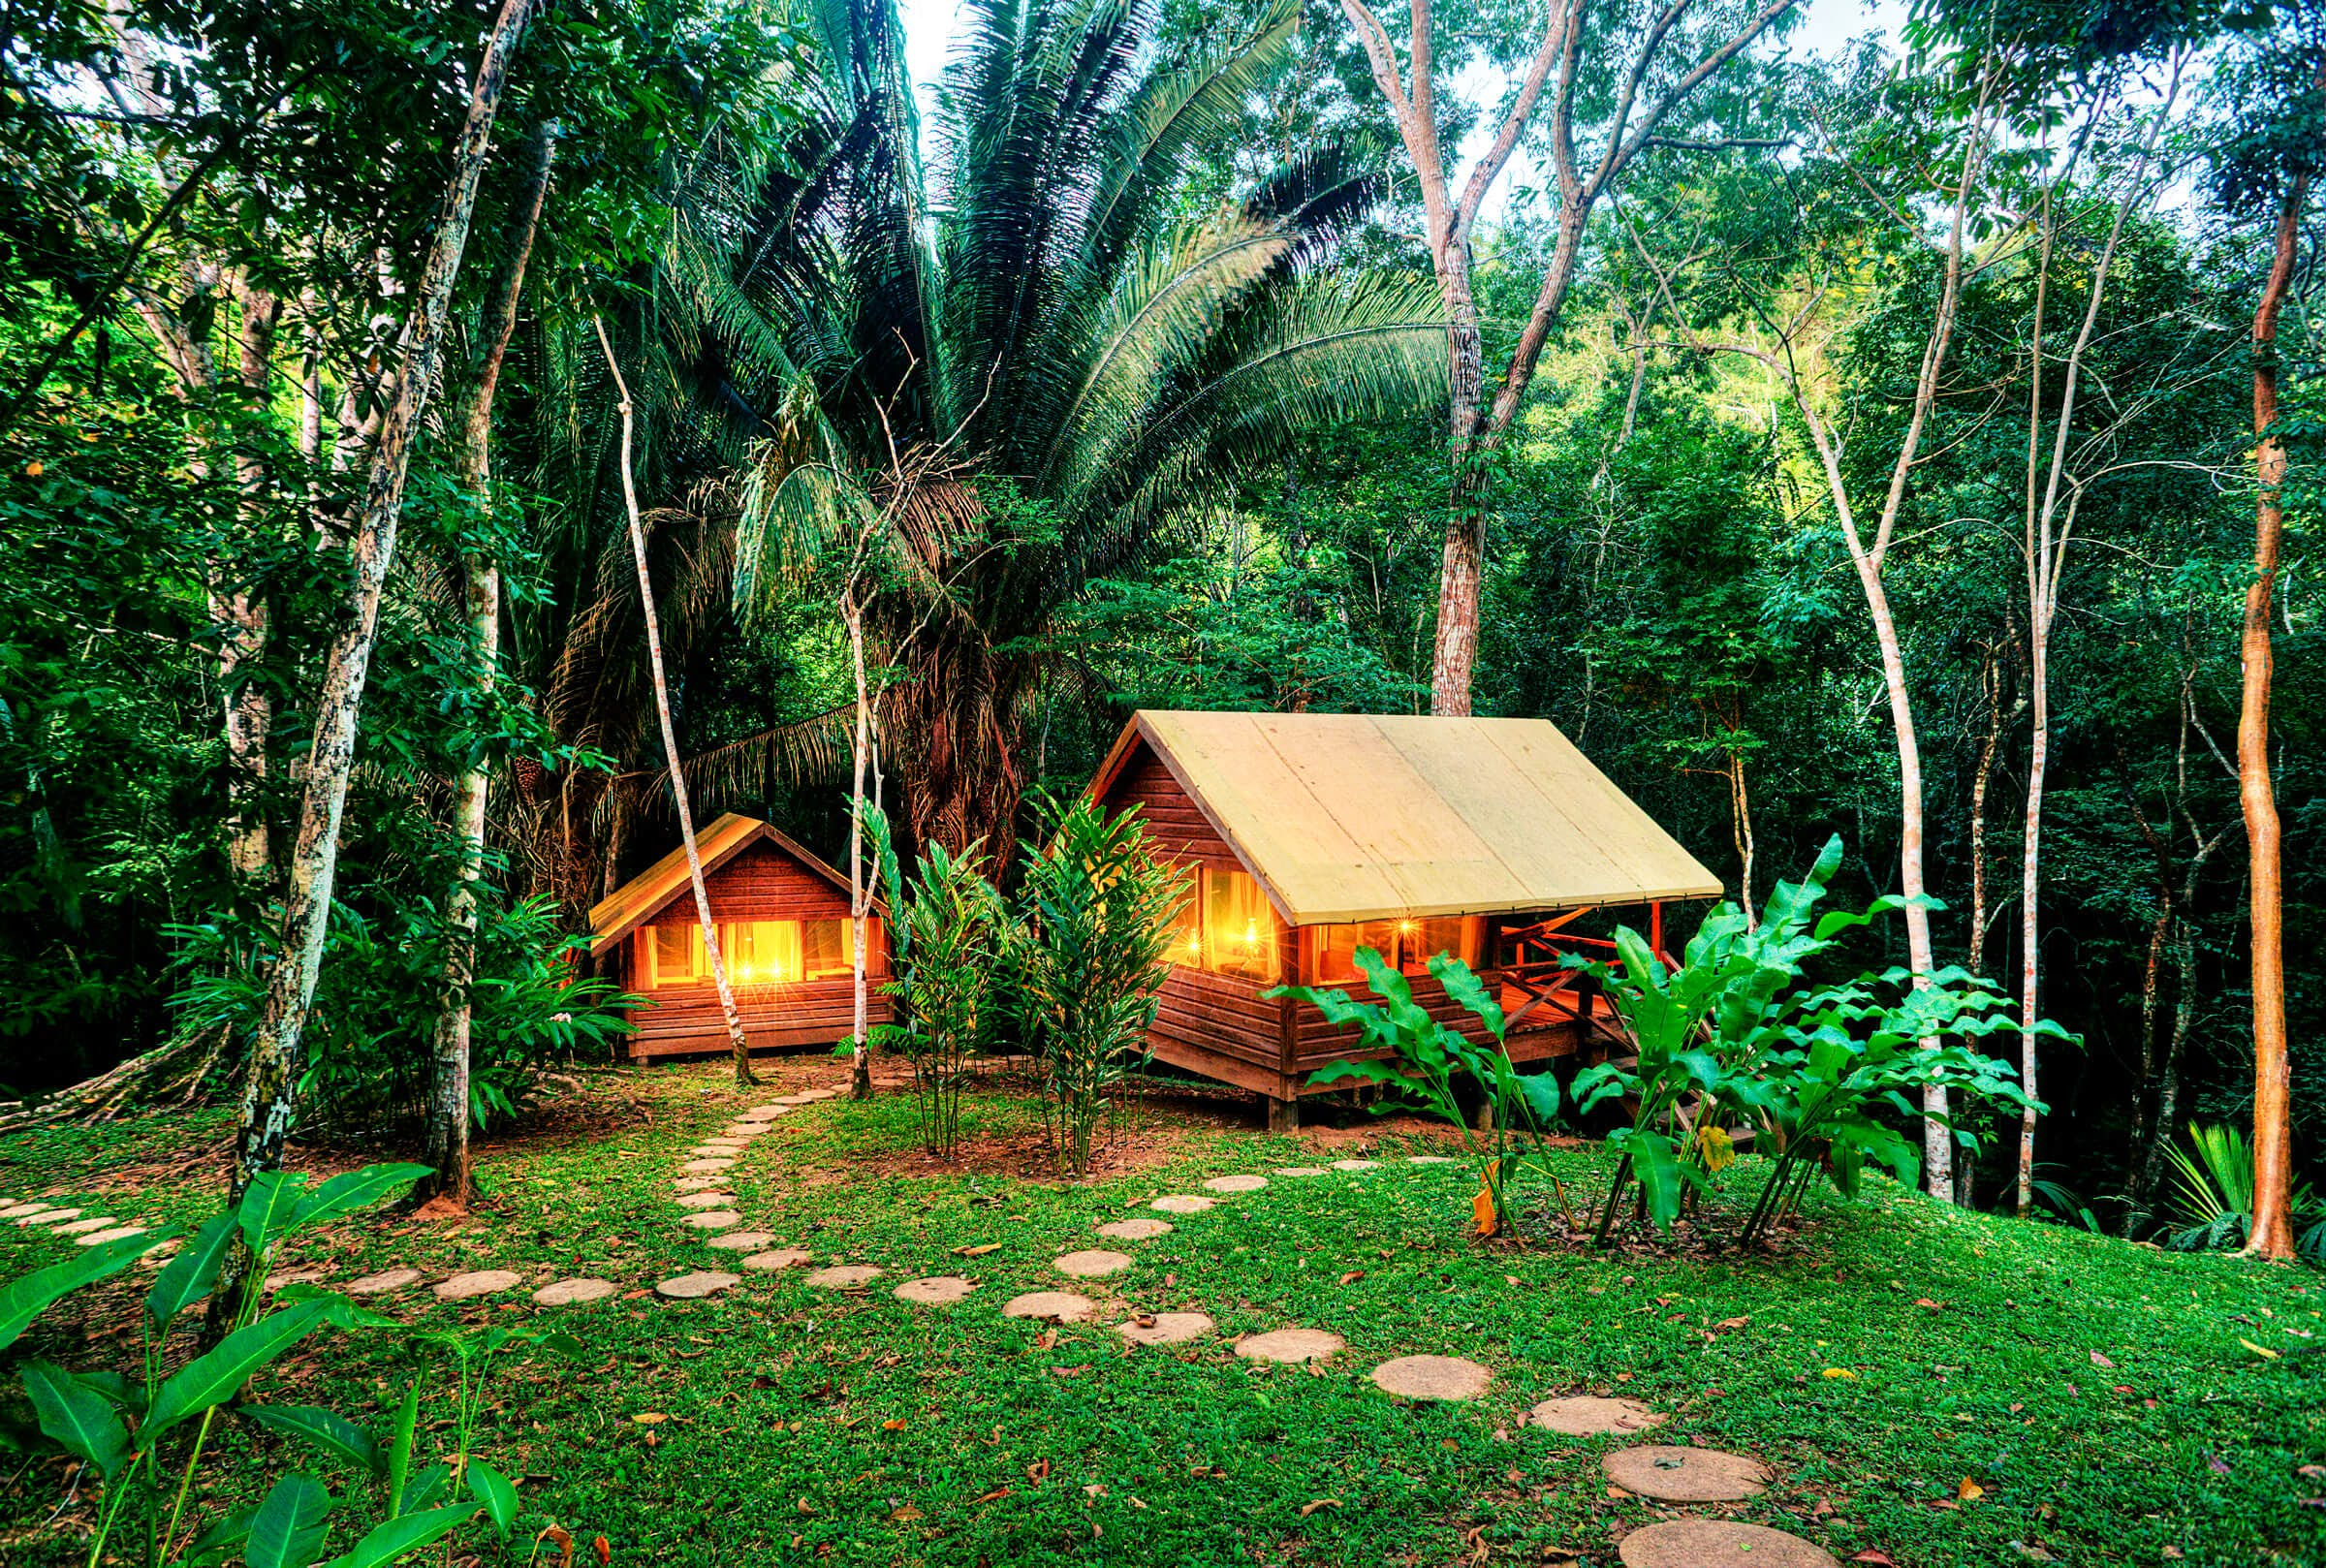 An eco-lodge in a Belize rainforest is tempting travellers on a budget